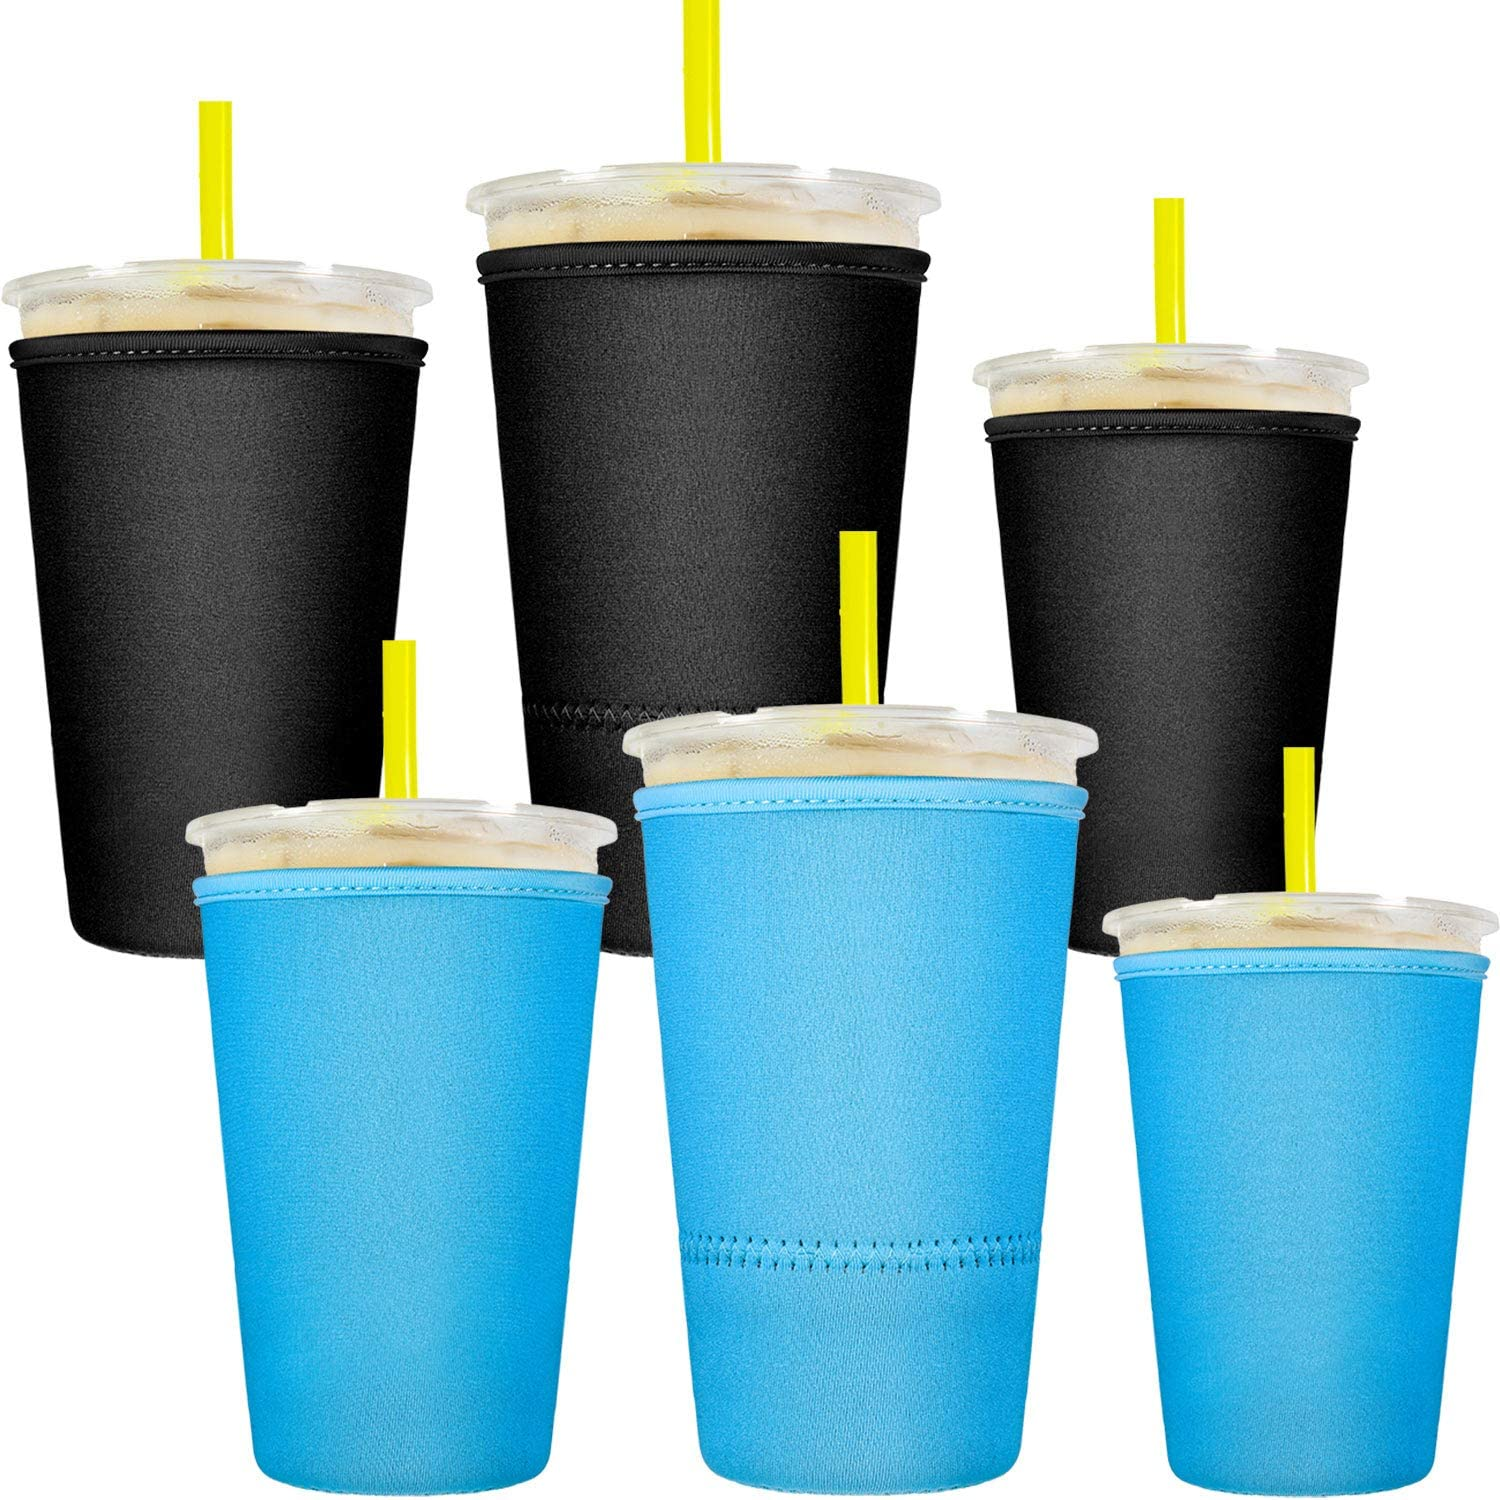 6 Pieces Reusable Iced Coffee Cup Sleeve Neoprene Cup Cover Drink Insulator Sleeves Insulated Sleeves Drinks Holder for 10 oz to 32 oz Cold Hot Drink Beverages Cup Bottle (Blue and Black)